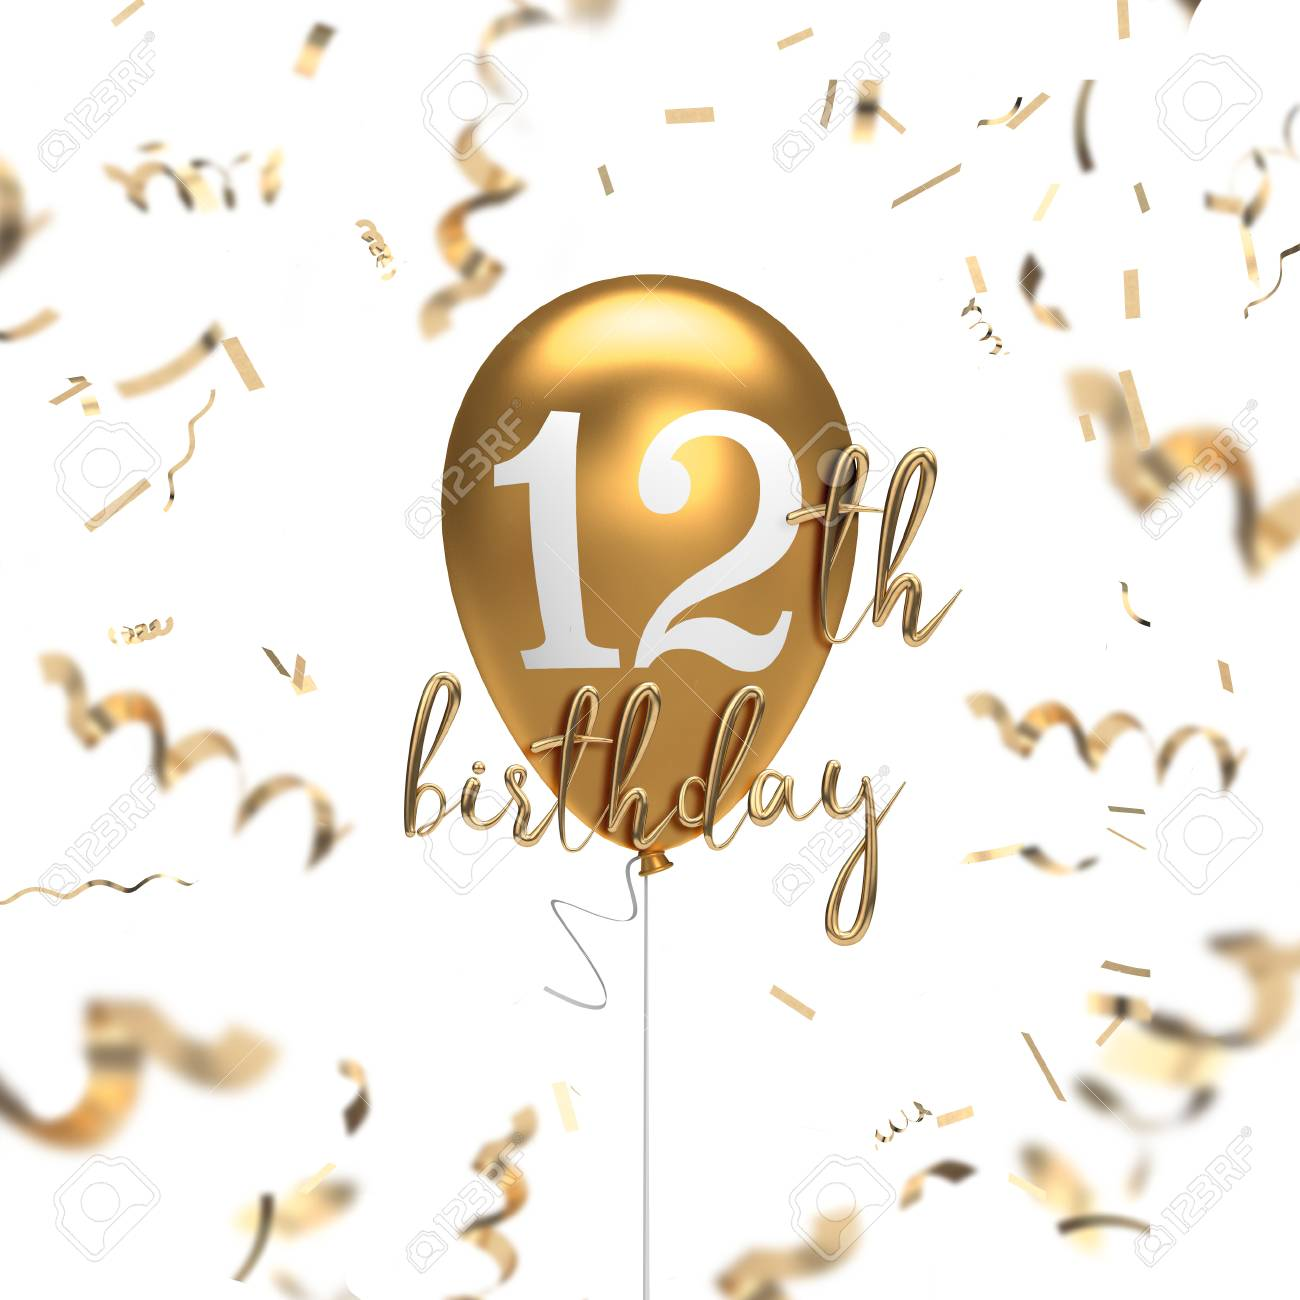 Happy 12th Birthday Gold Balloon Greeting Background 3D Rendering Stock Photo